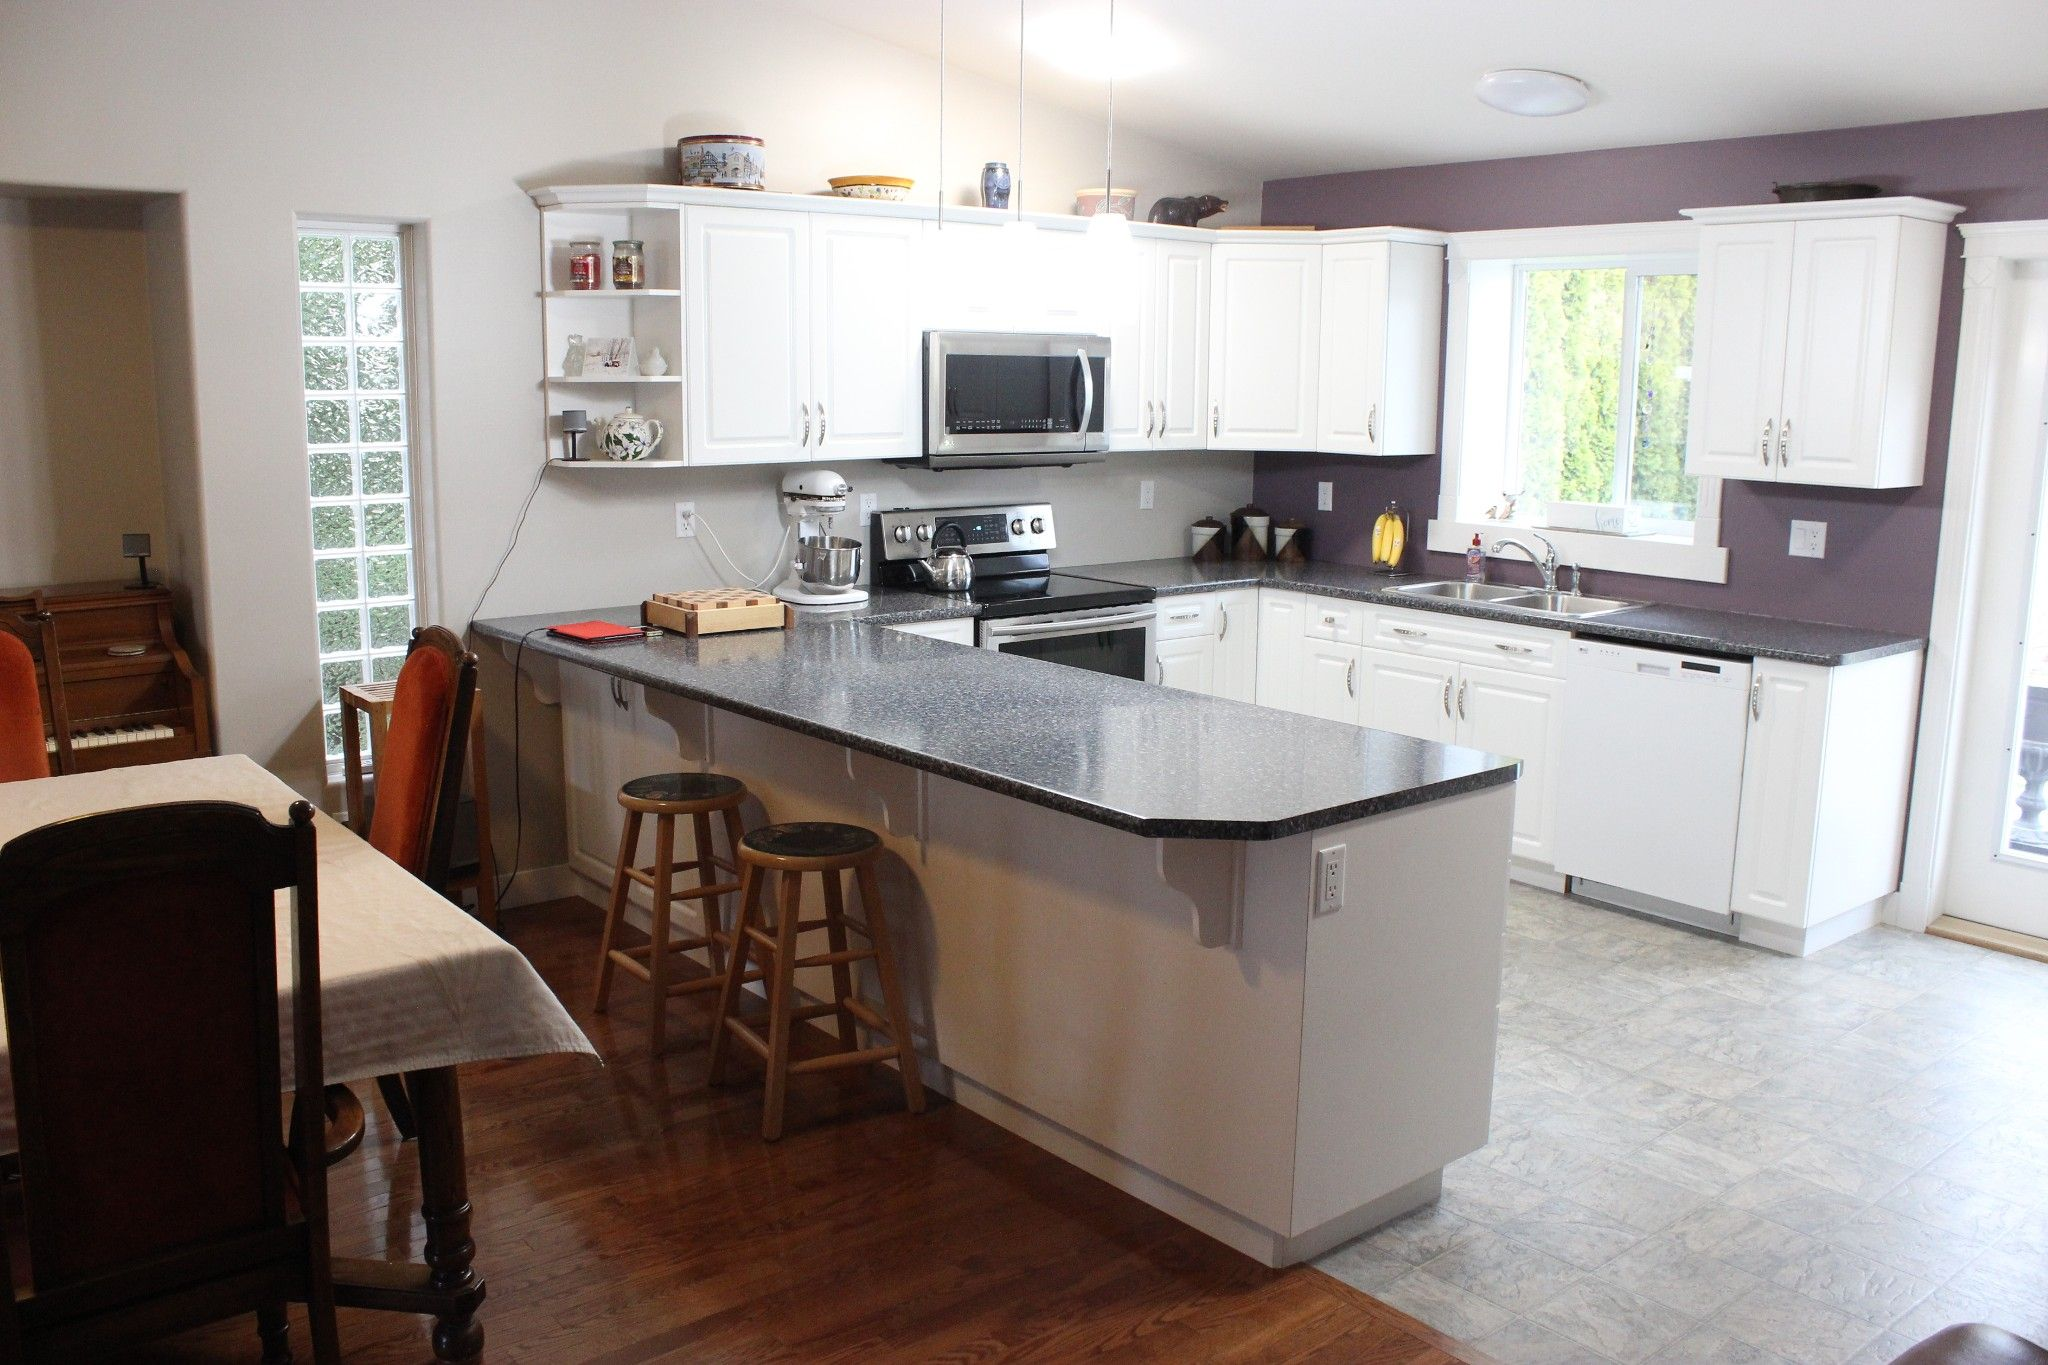 Photo 9: Photos: 351 Juniper Street in Chase: House for sale : MLS®# 151124